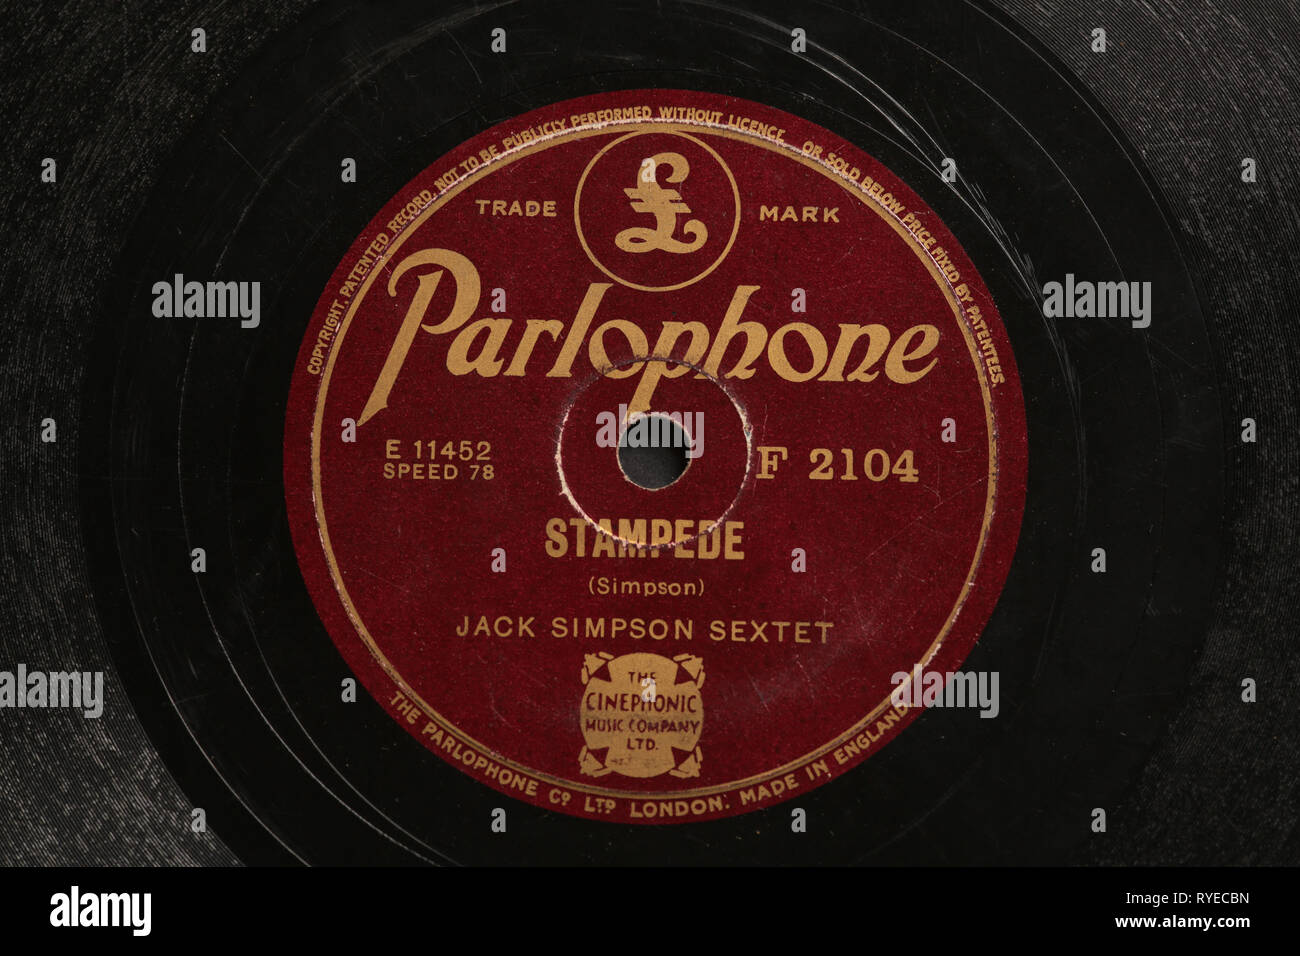 Vintage 78 rpm record label Stock Photo